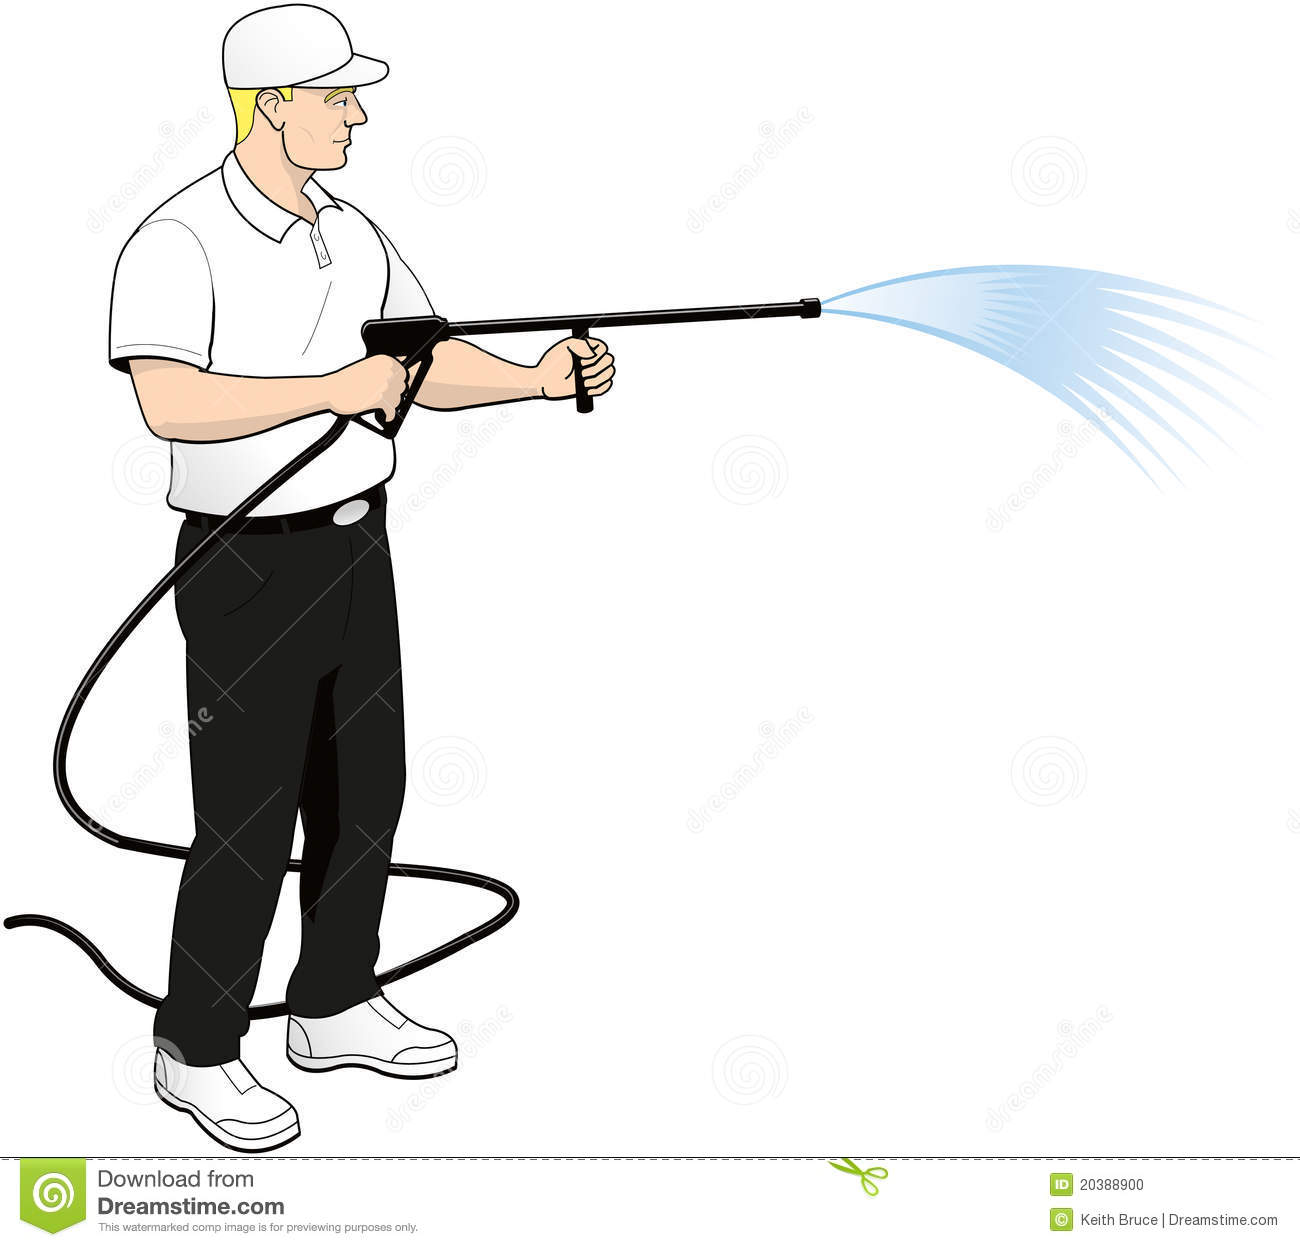 pressure washing clipart clipart suggest Pressure Washing Logos Pressure Washing Logos